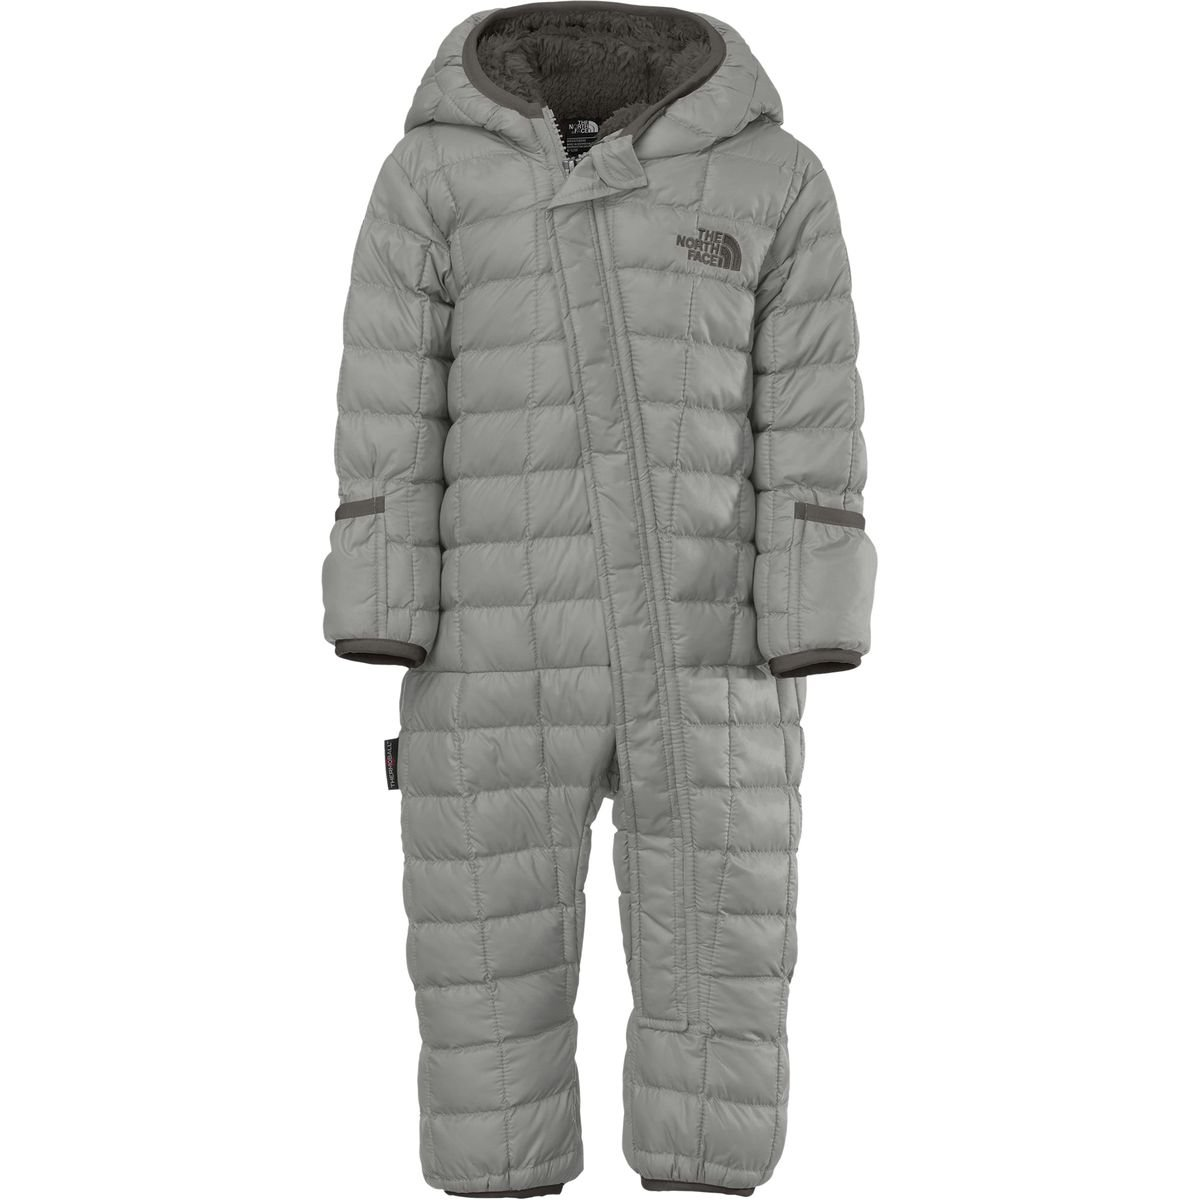 The North Face Infant Thermoball Bunting Metallic Silver 6-12 Months